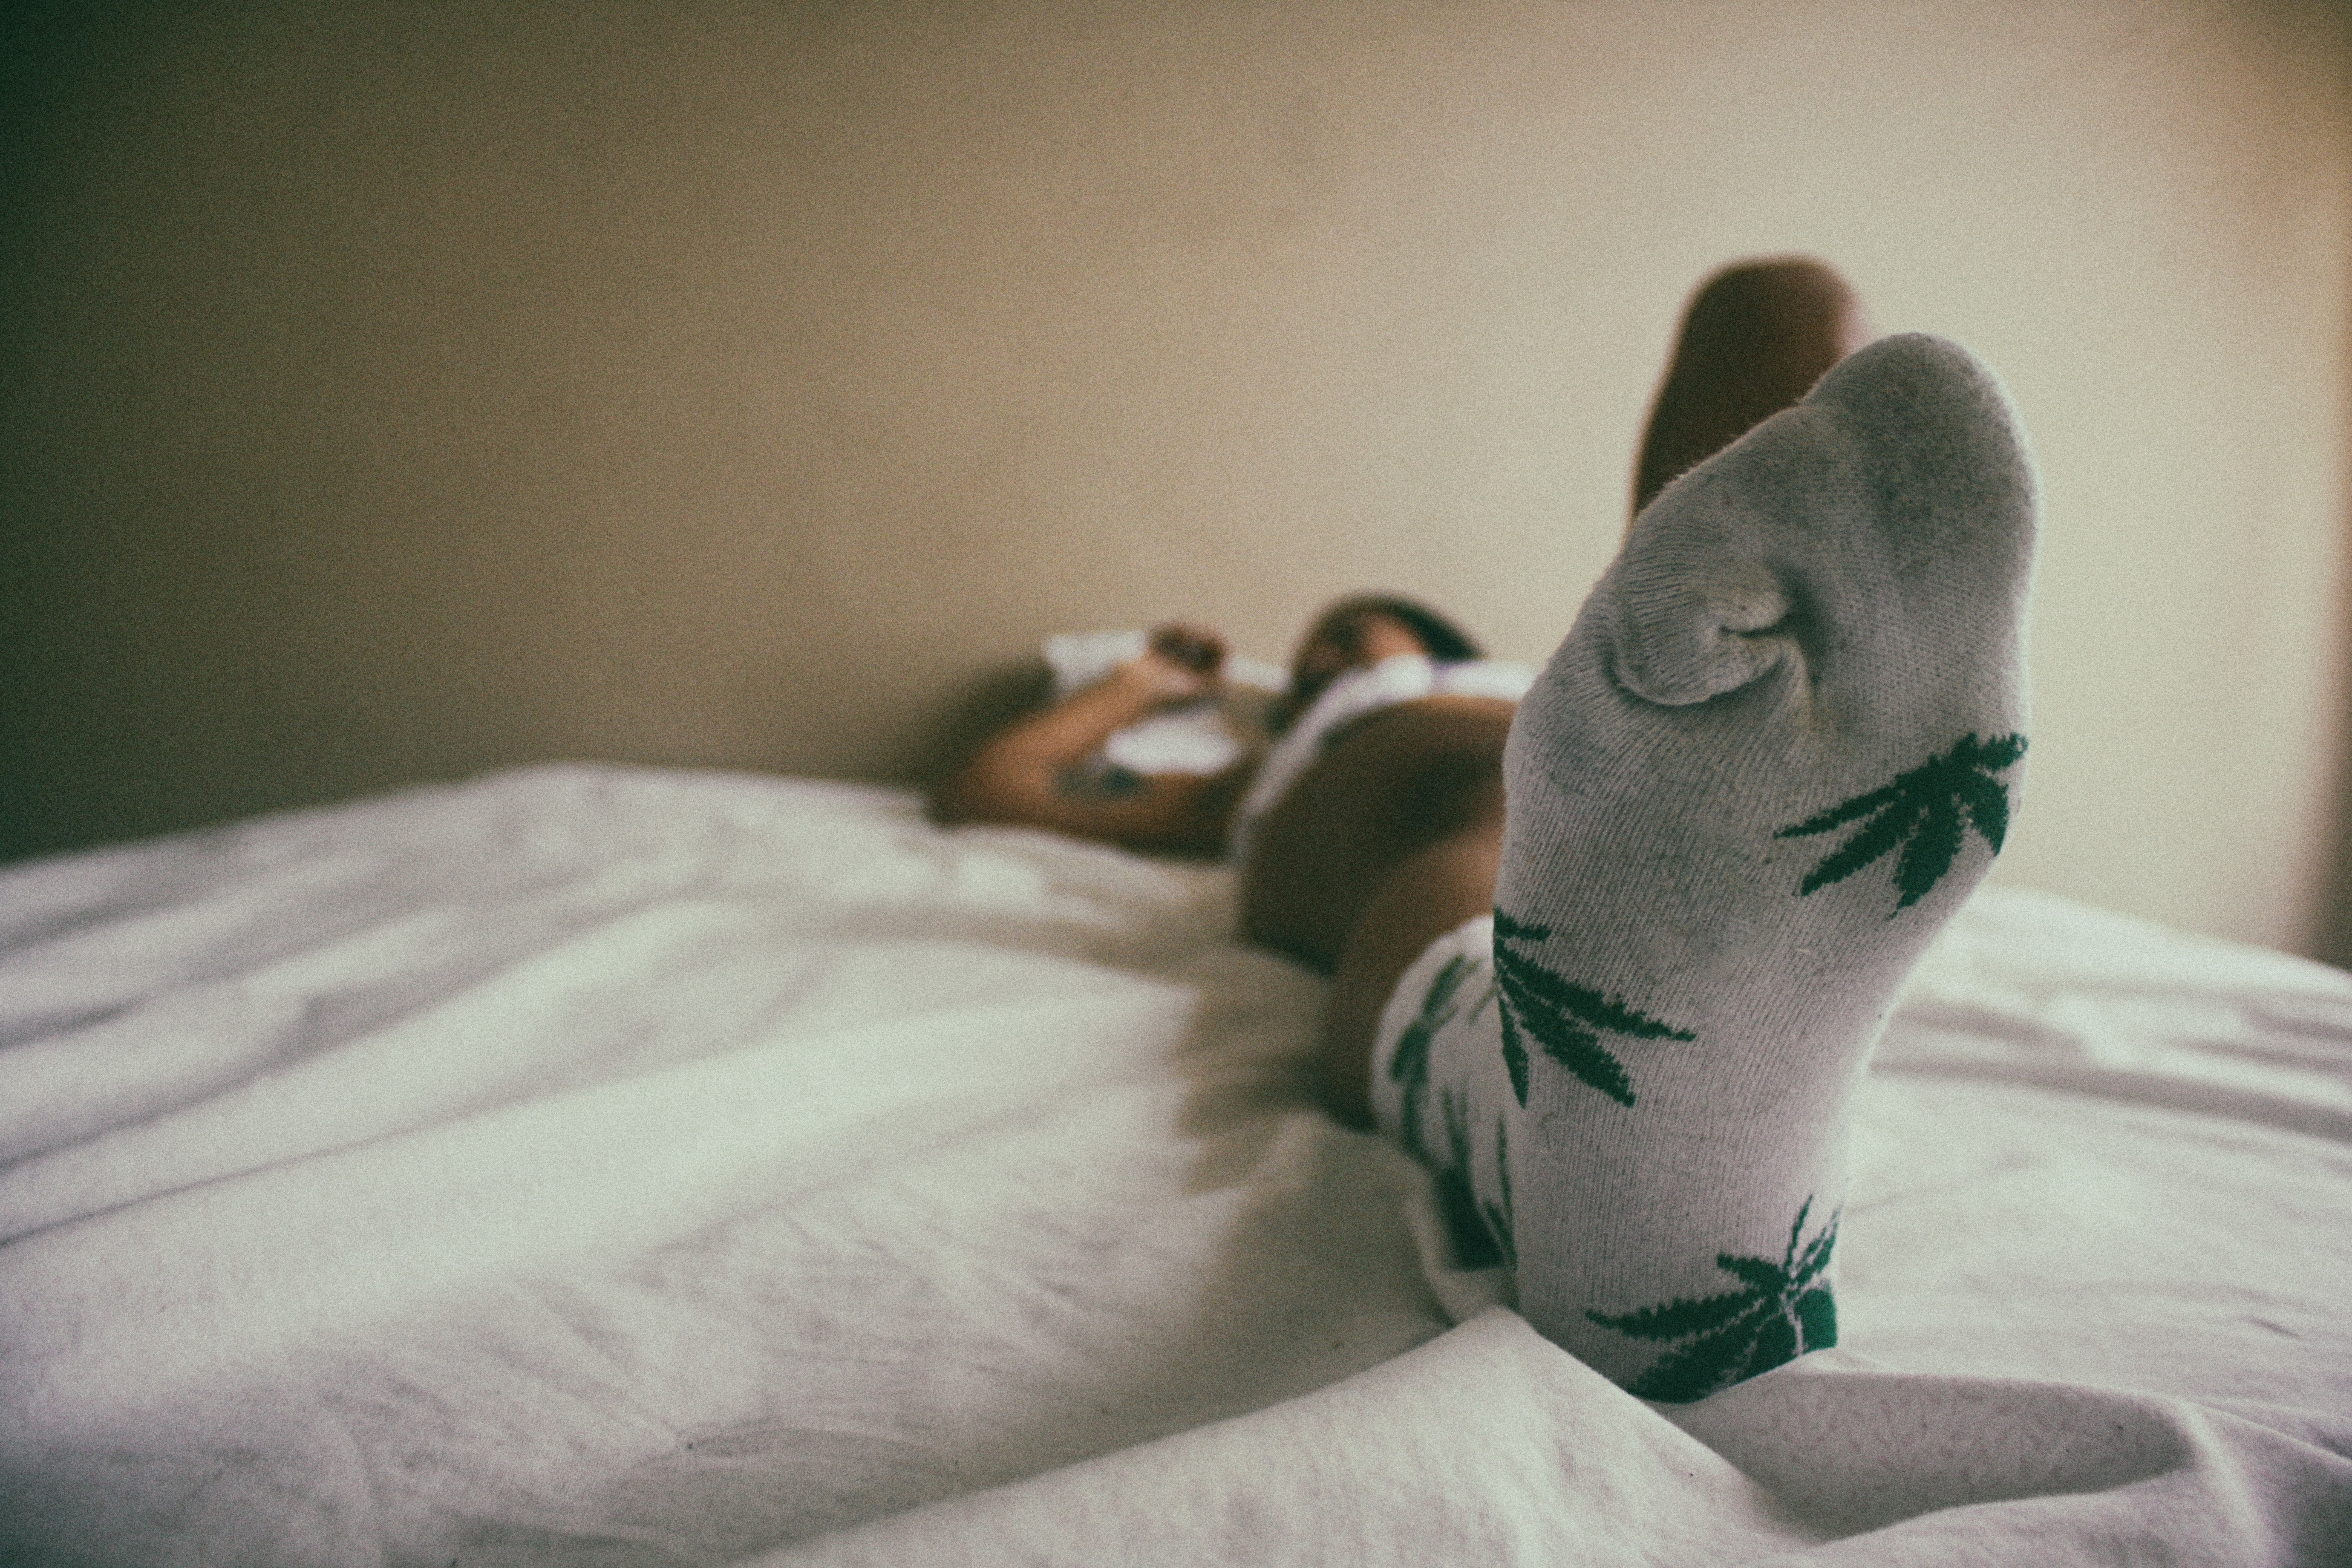 Close-Up Photo of Person Wearing Socks